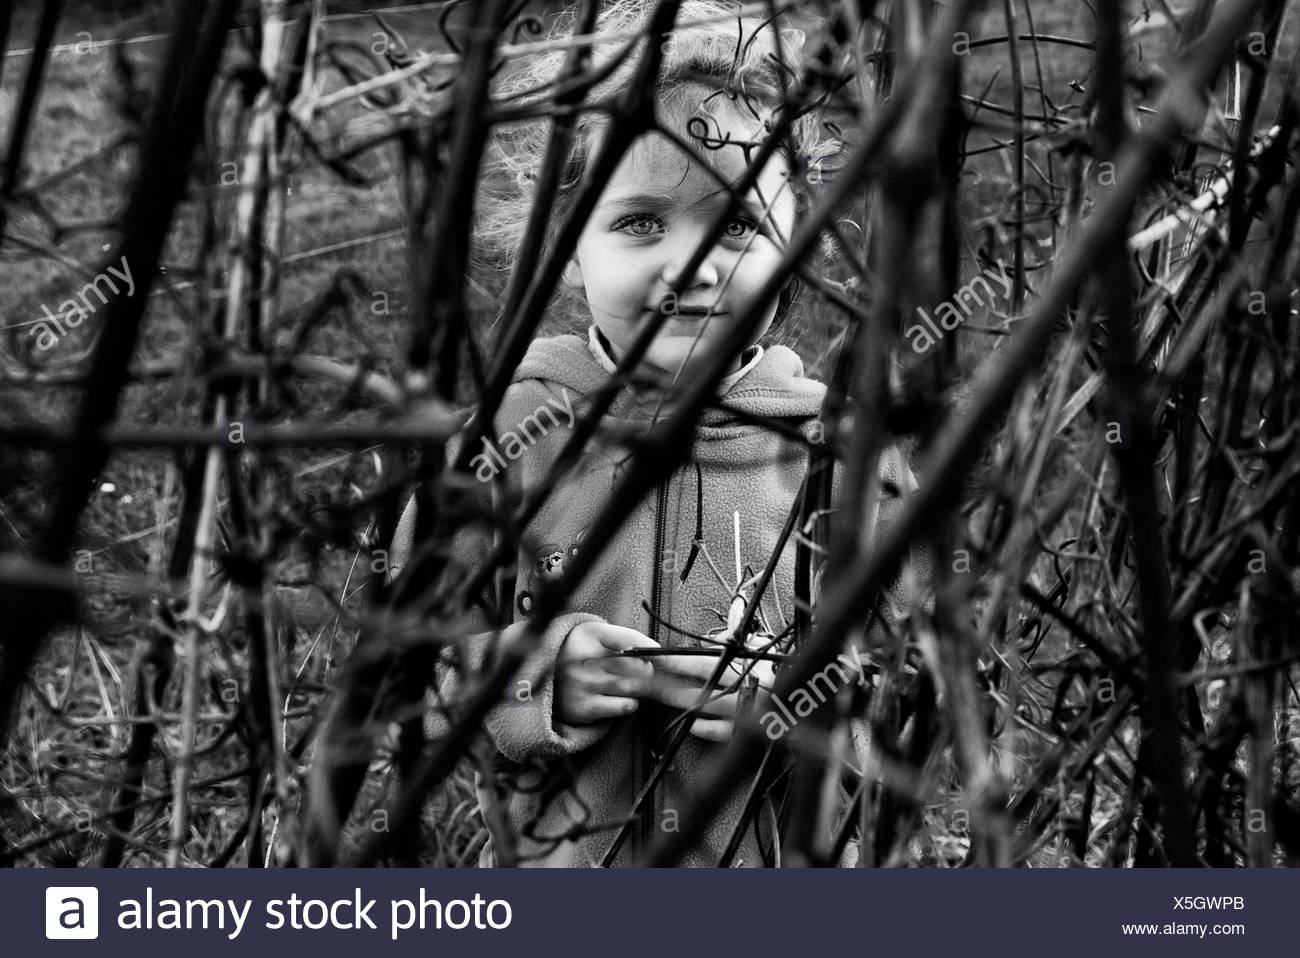 Girl hiding behind bushes - Stock Image